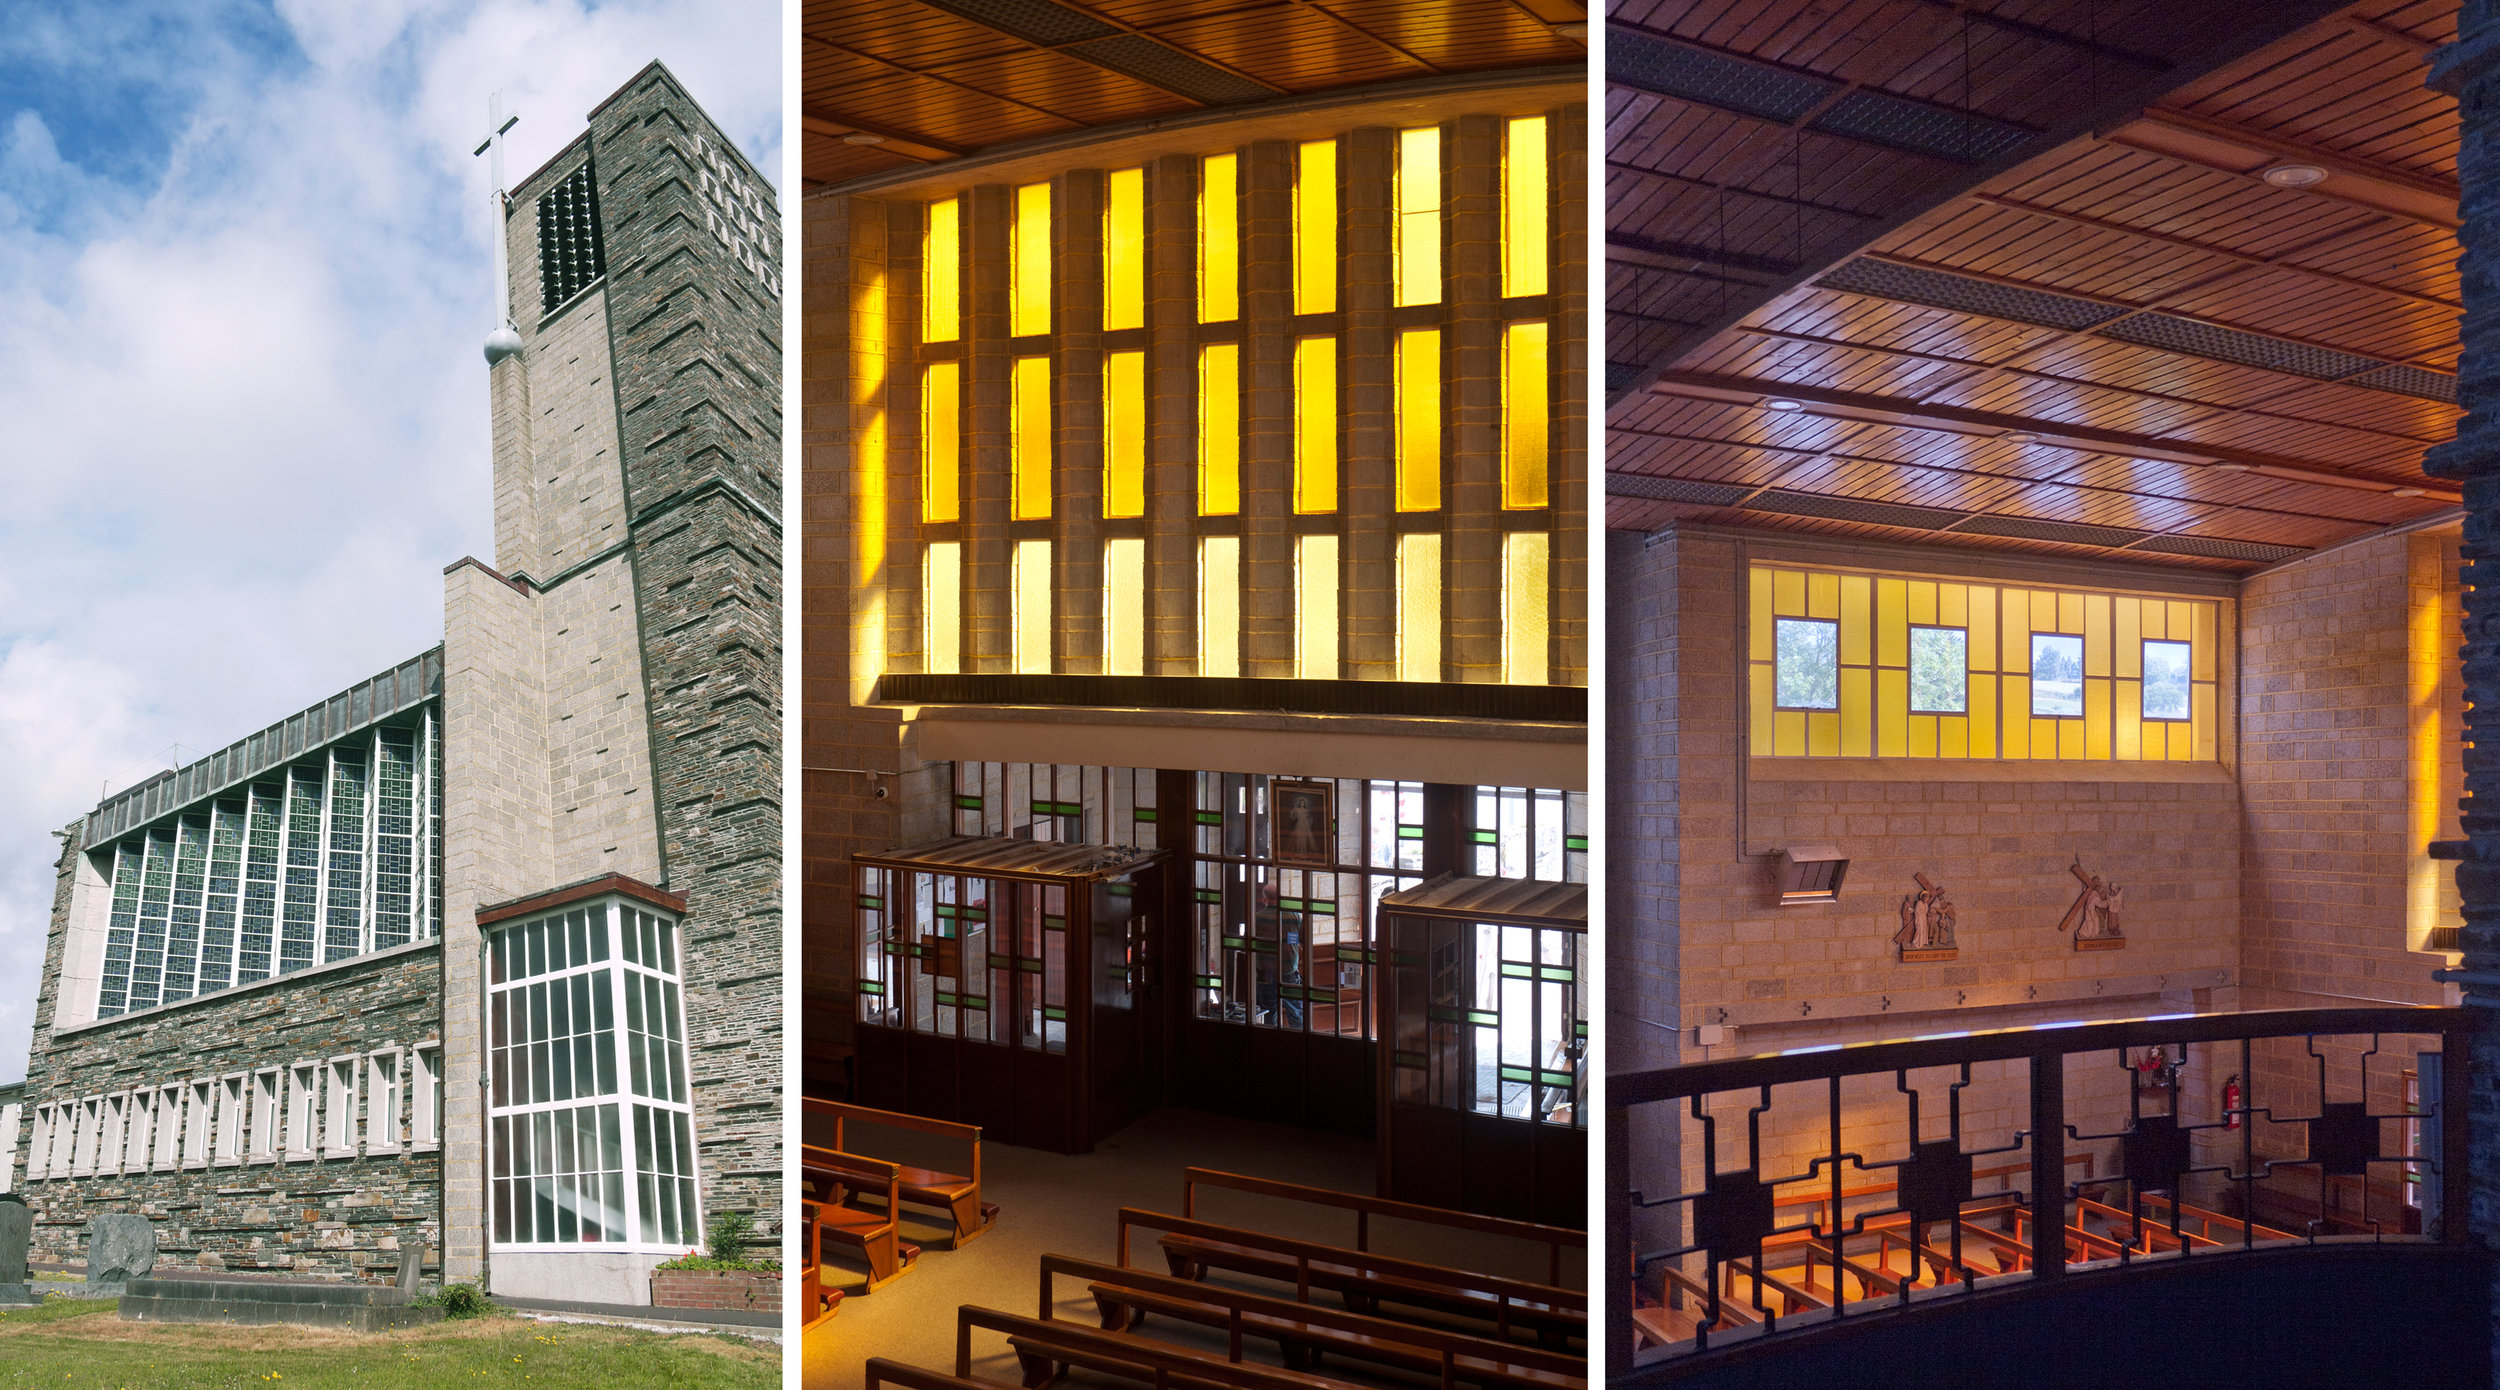 South side of the church: Interior with yellow glass - transparent over the entrance doors,opaque at the sides.